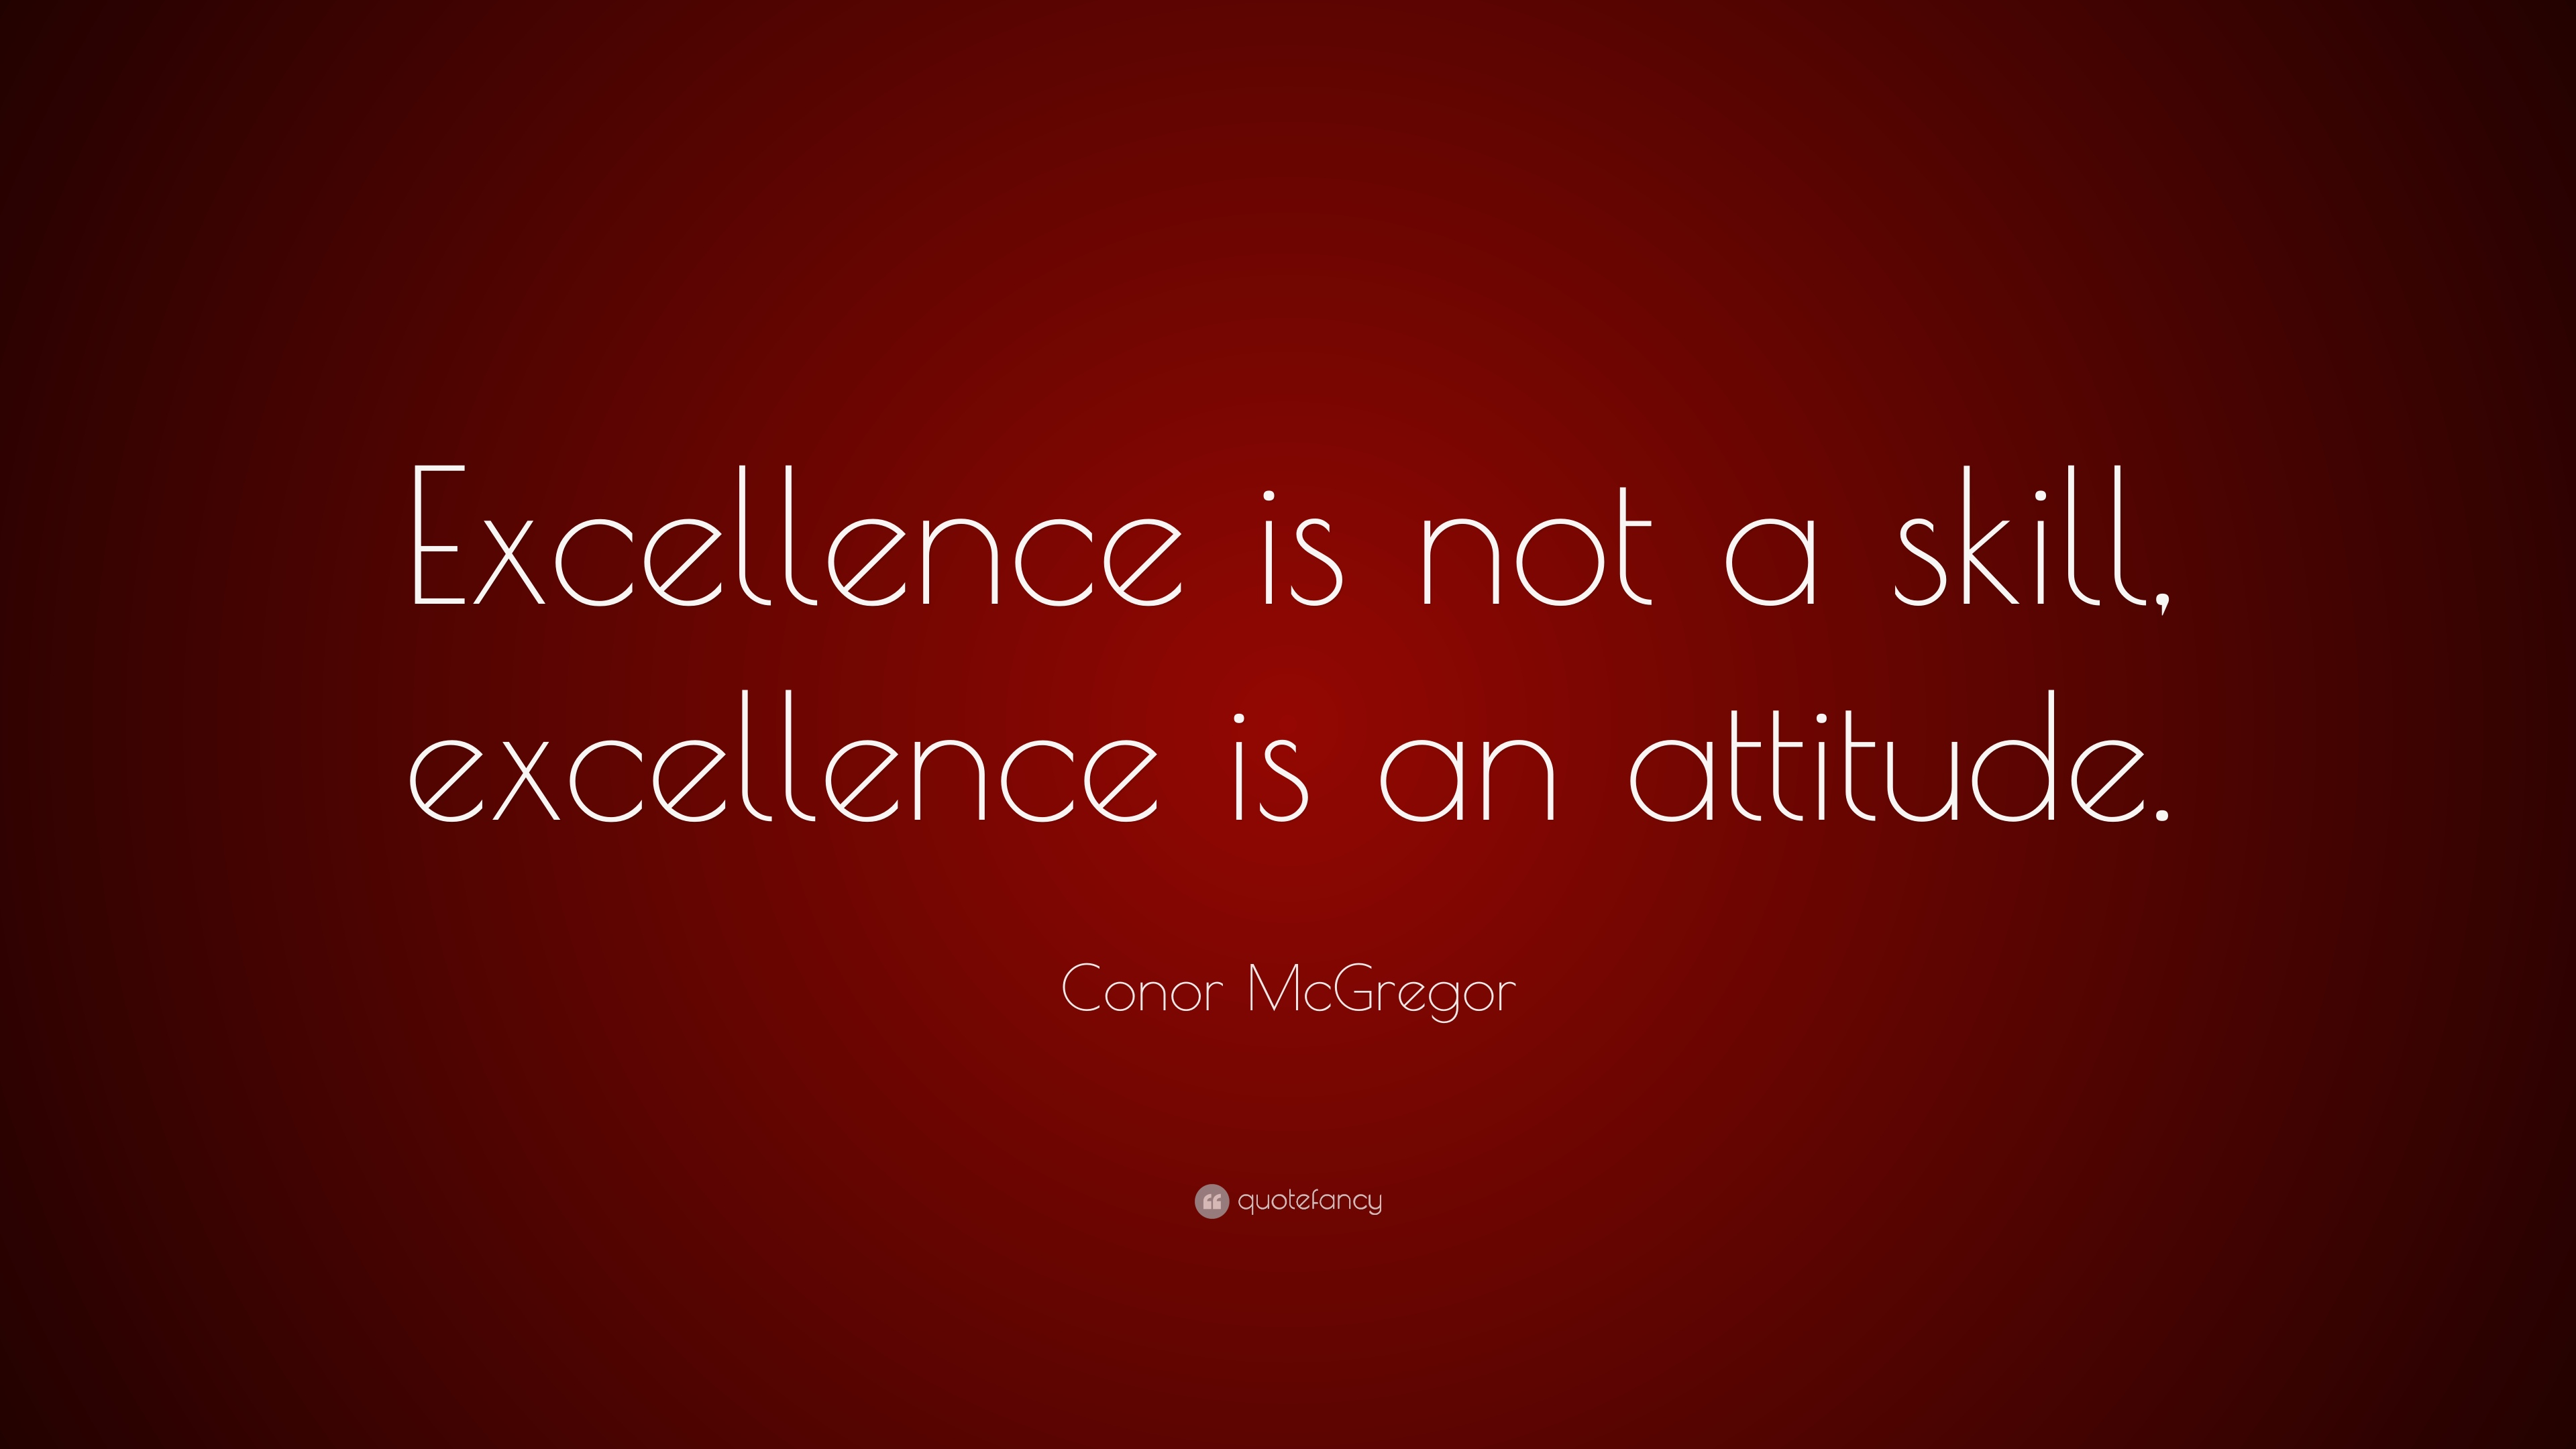 Conor Mcgregor Quote Wallpaper Conor Mcgregor Quote Excellence Is Not A Skill